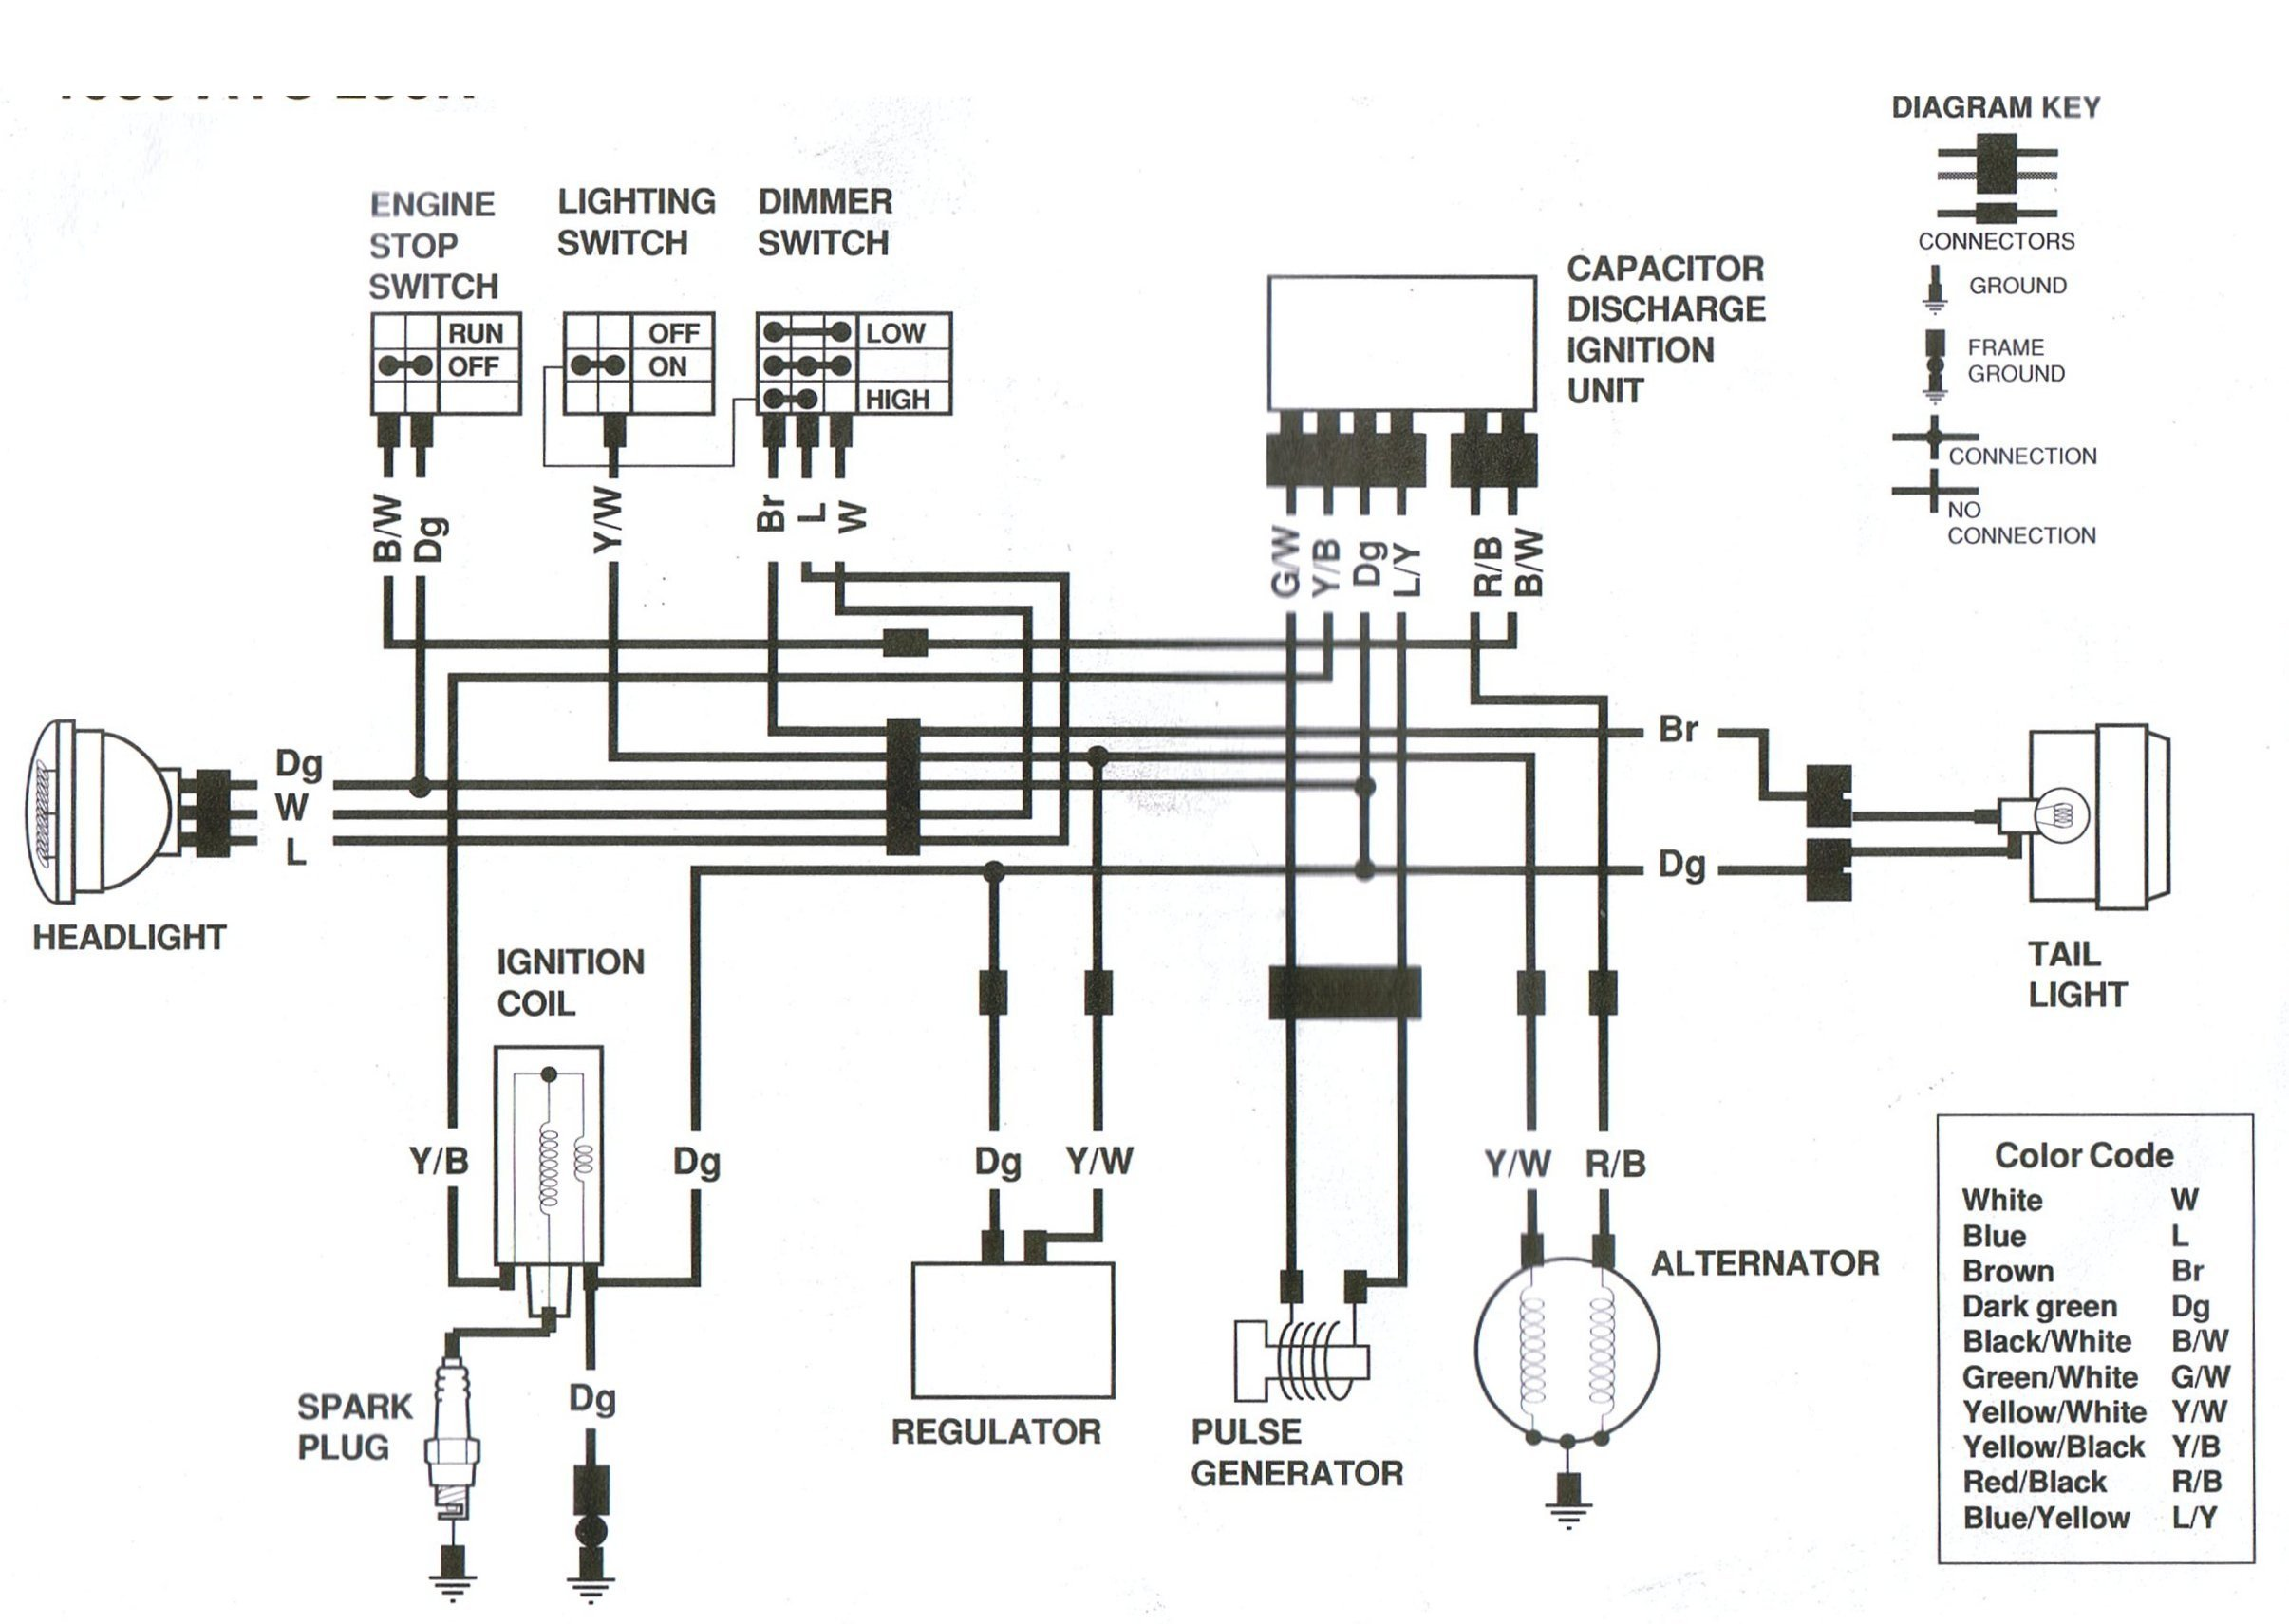 wiring diagram for dodge 1997 250 diesel